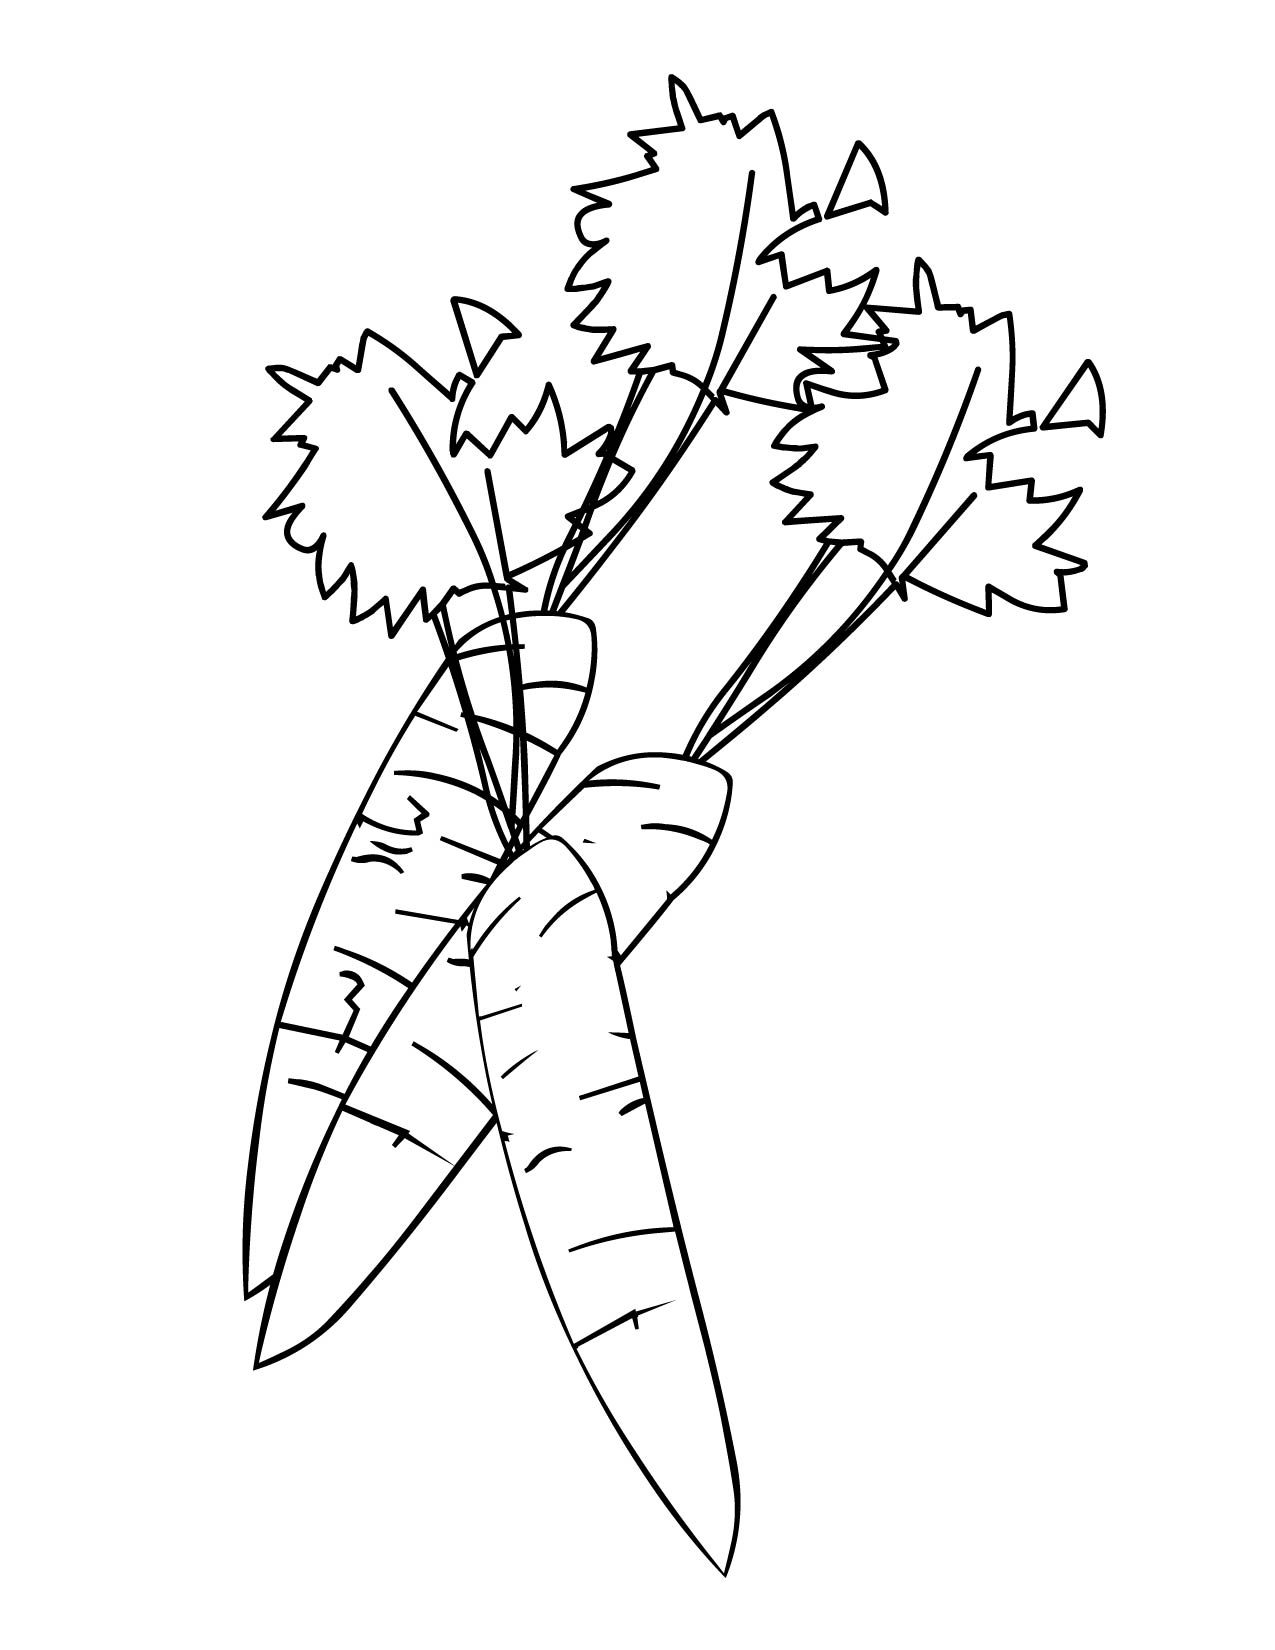 Carrot Coloring Page Handipoints